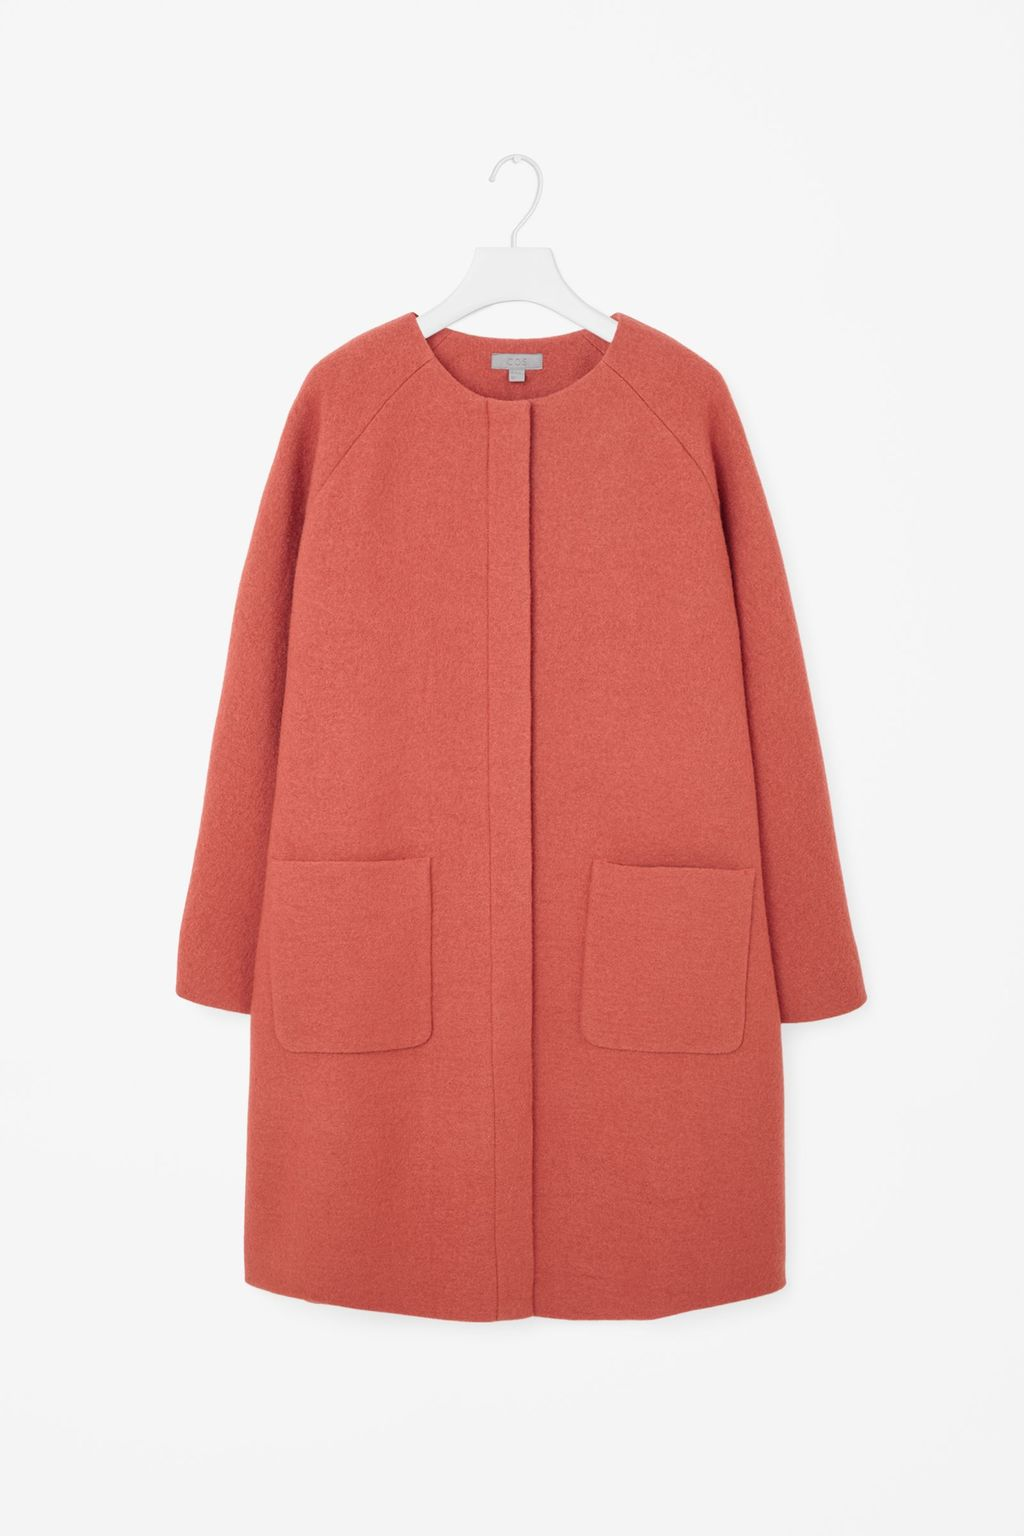 A Line Wool Coat - pattern: plain; collar: round collar/collarless; style: single breasted; length: mid thigh; predominant colour: coral; occasions: casual, creative work; fit: straight cut (boxy); fibres: wool - 100%; sleeve length: long sleeve; sleeve style: standard; collar break: high; pattern type: fabric; texture group: woven bulky/heavy; season: a/w 2015; wardrobe: highlight; embellishment location: hip